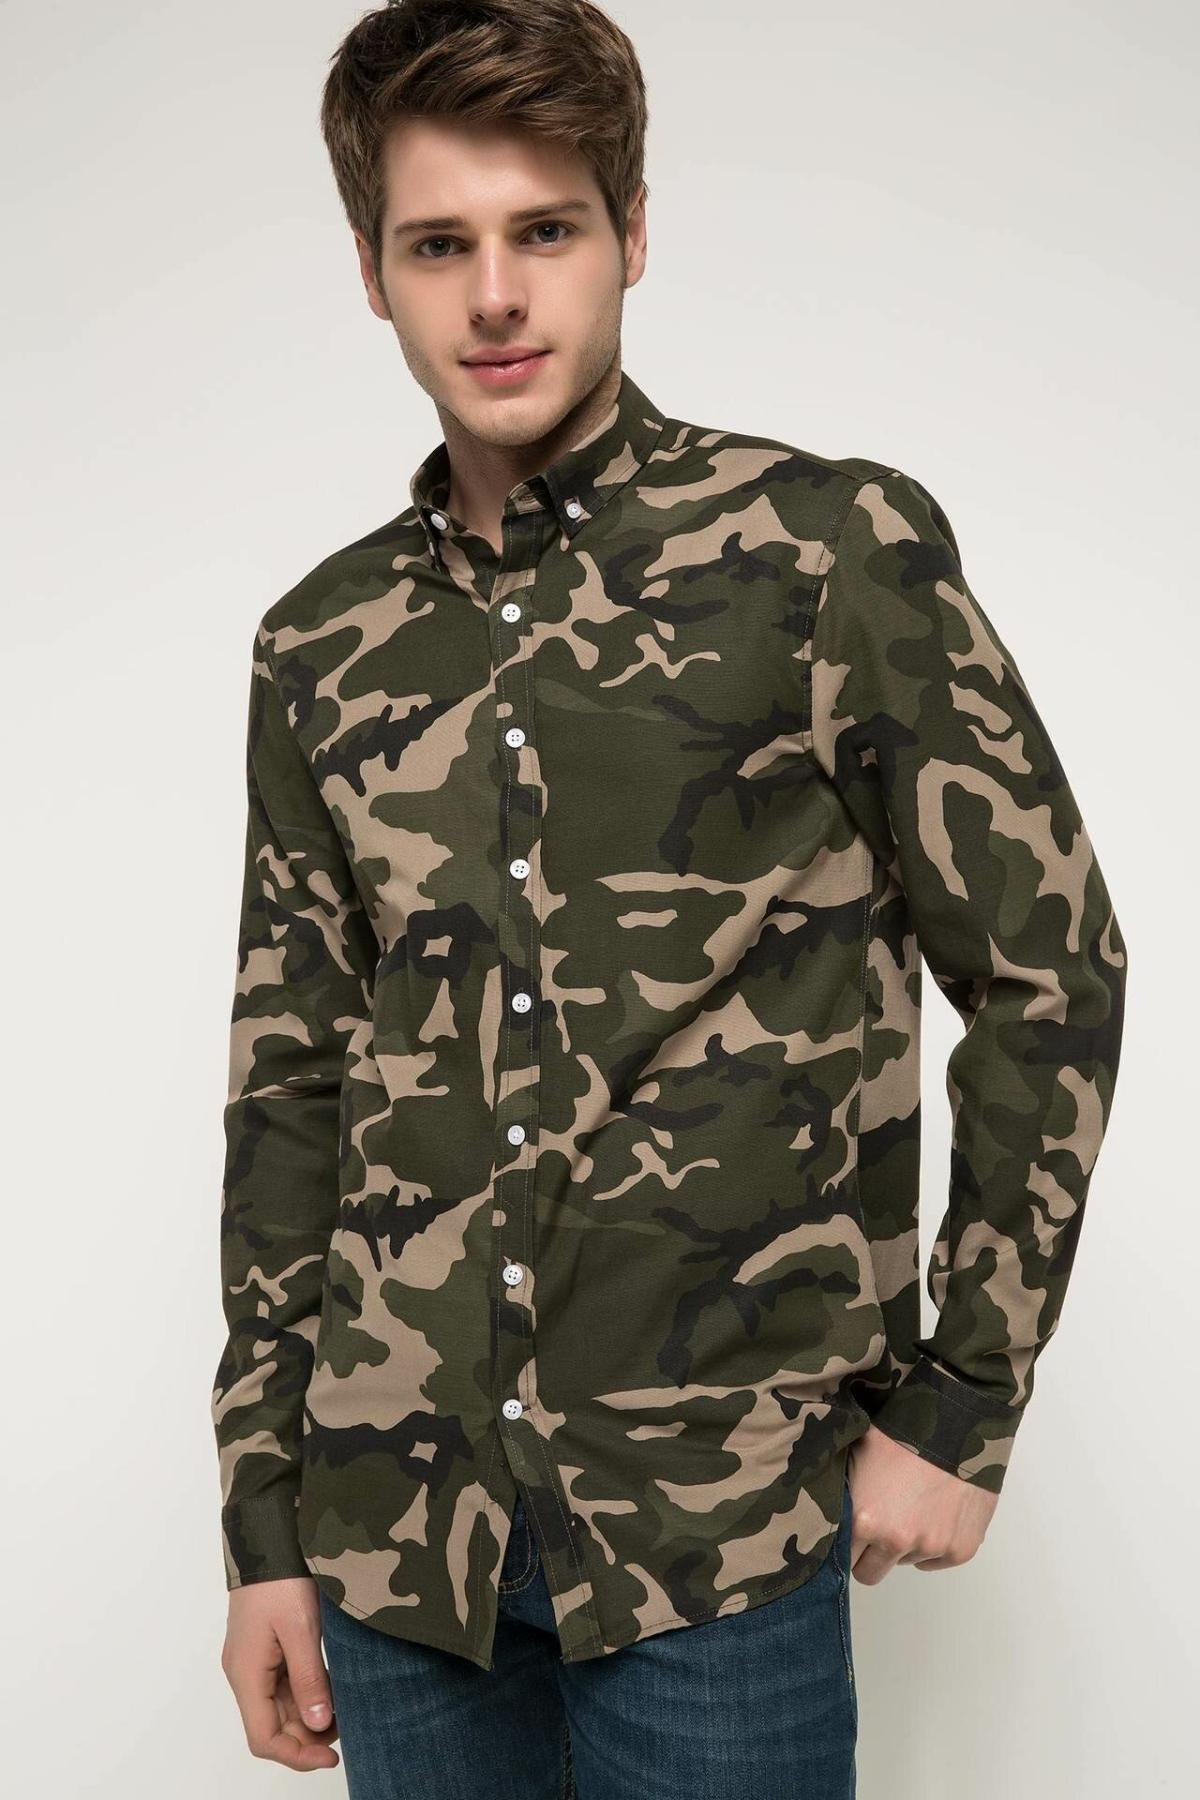 DeFacto Men Fashion Casual Camouflage Green Color Shirts Lapel Collar Male Shirts Male Slim Long Sleeves Tops New - I3484AZ18SP